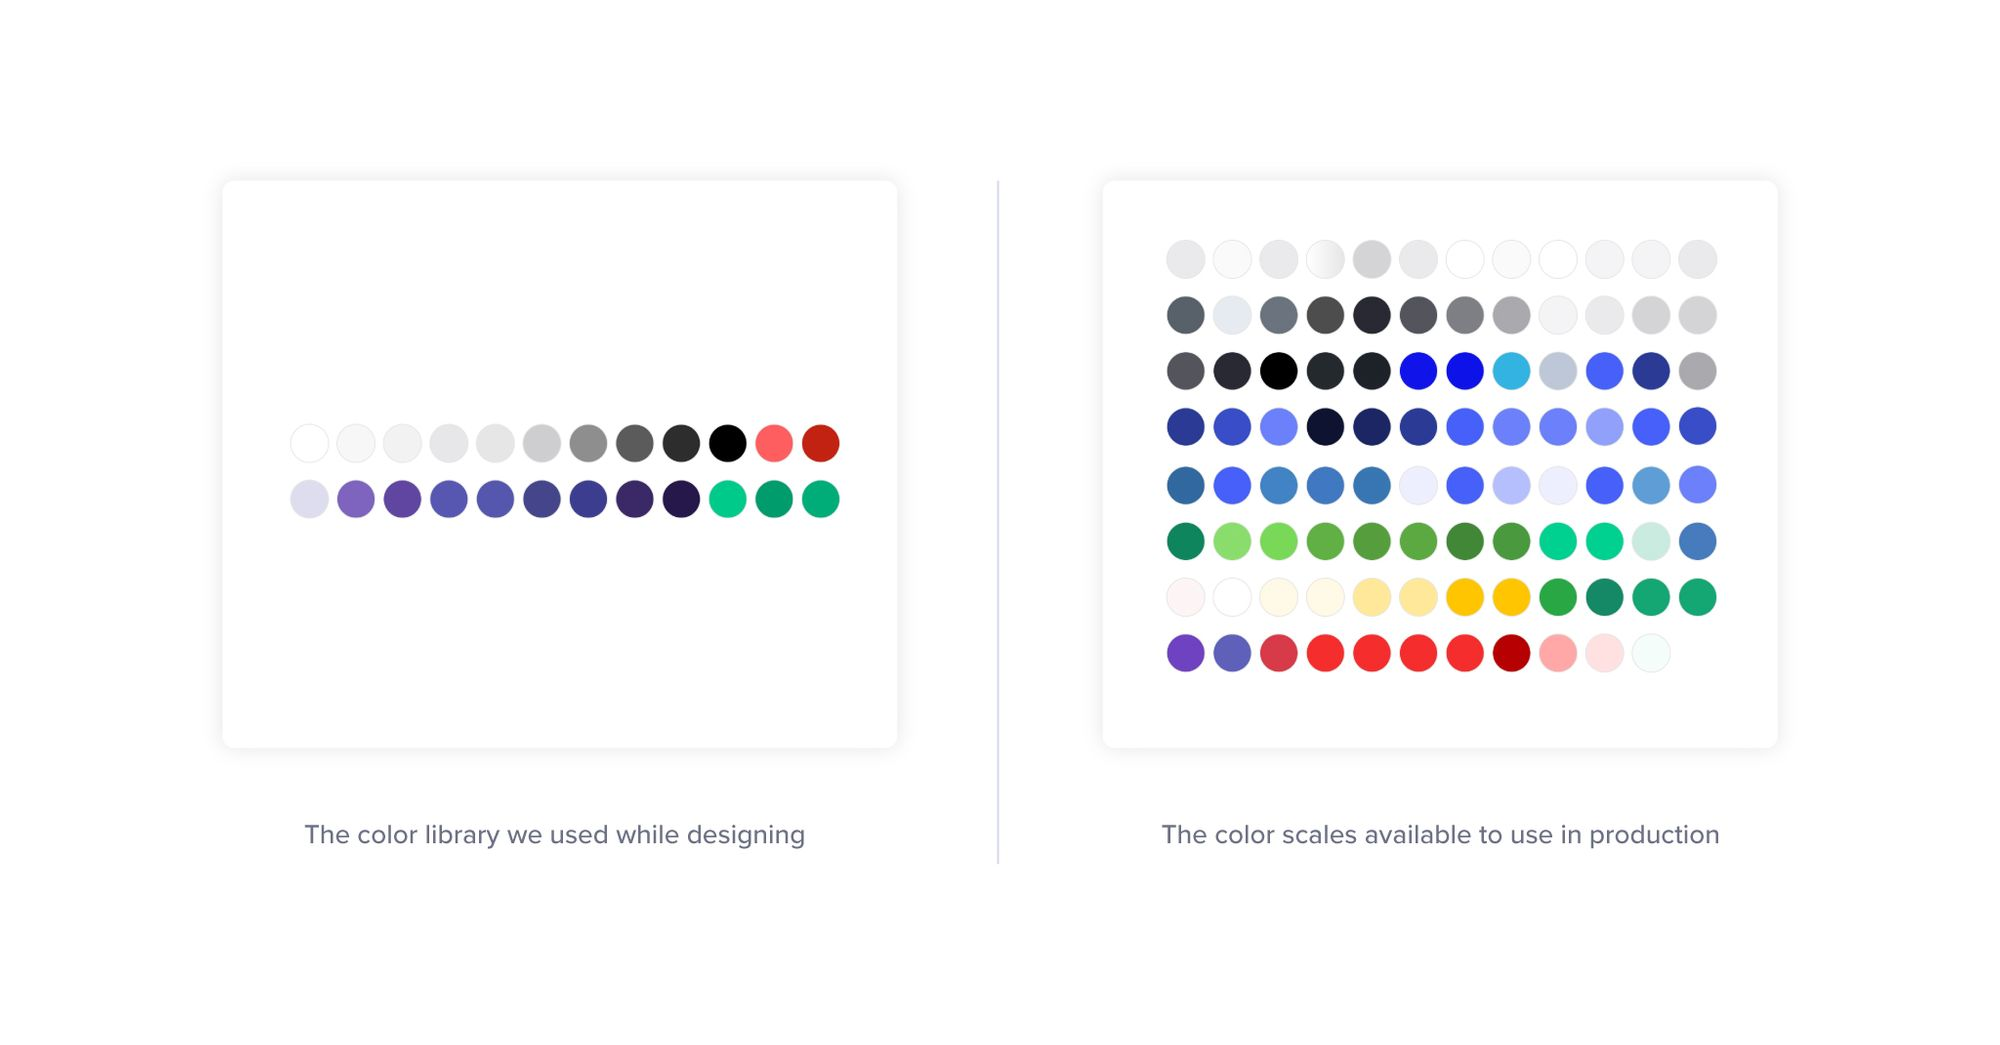 Image of the color library we used while designing vs the colour scales that were available to use in production.